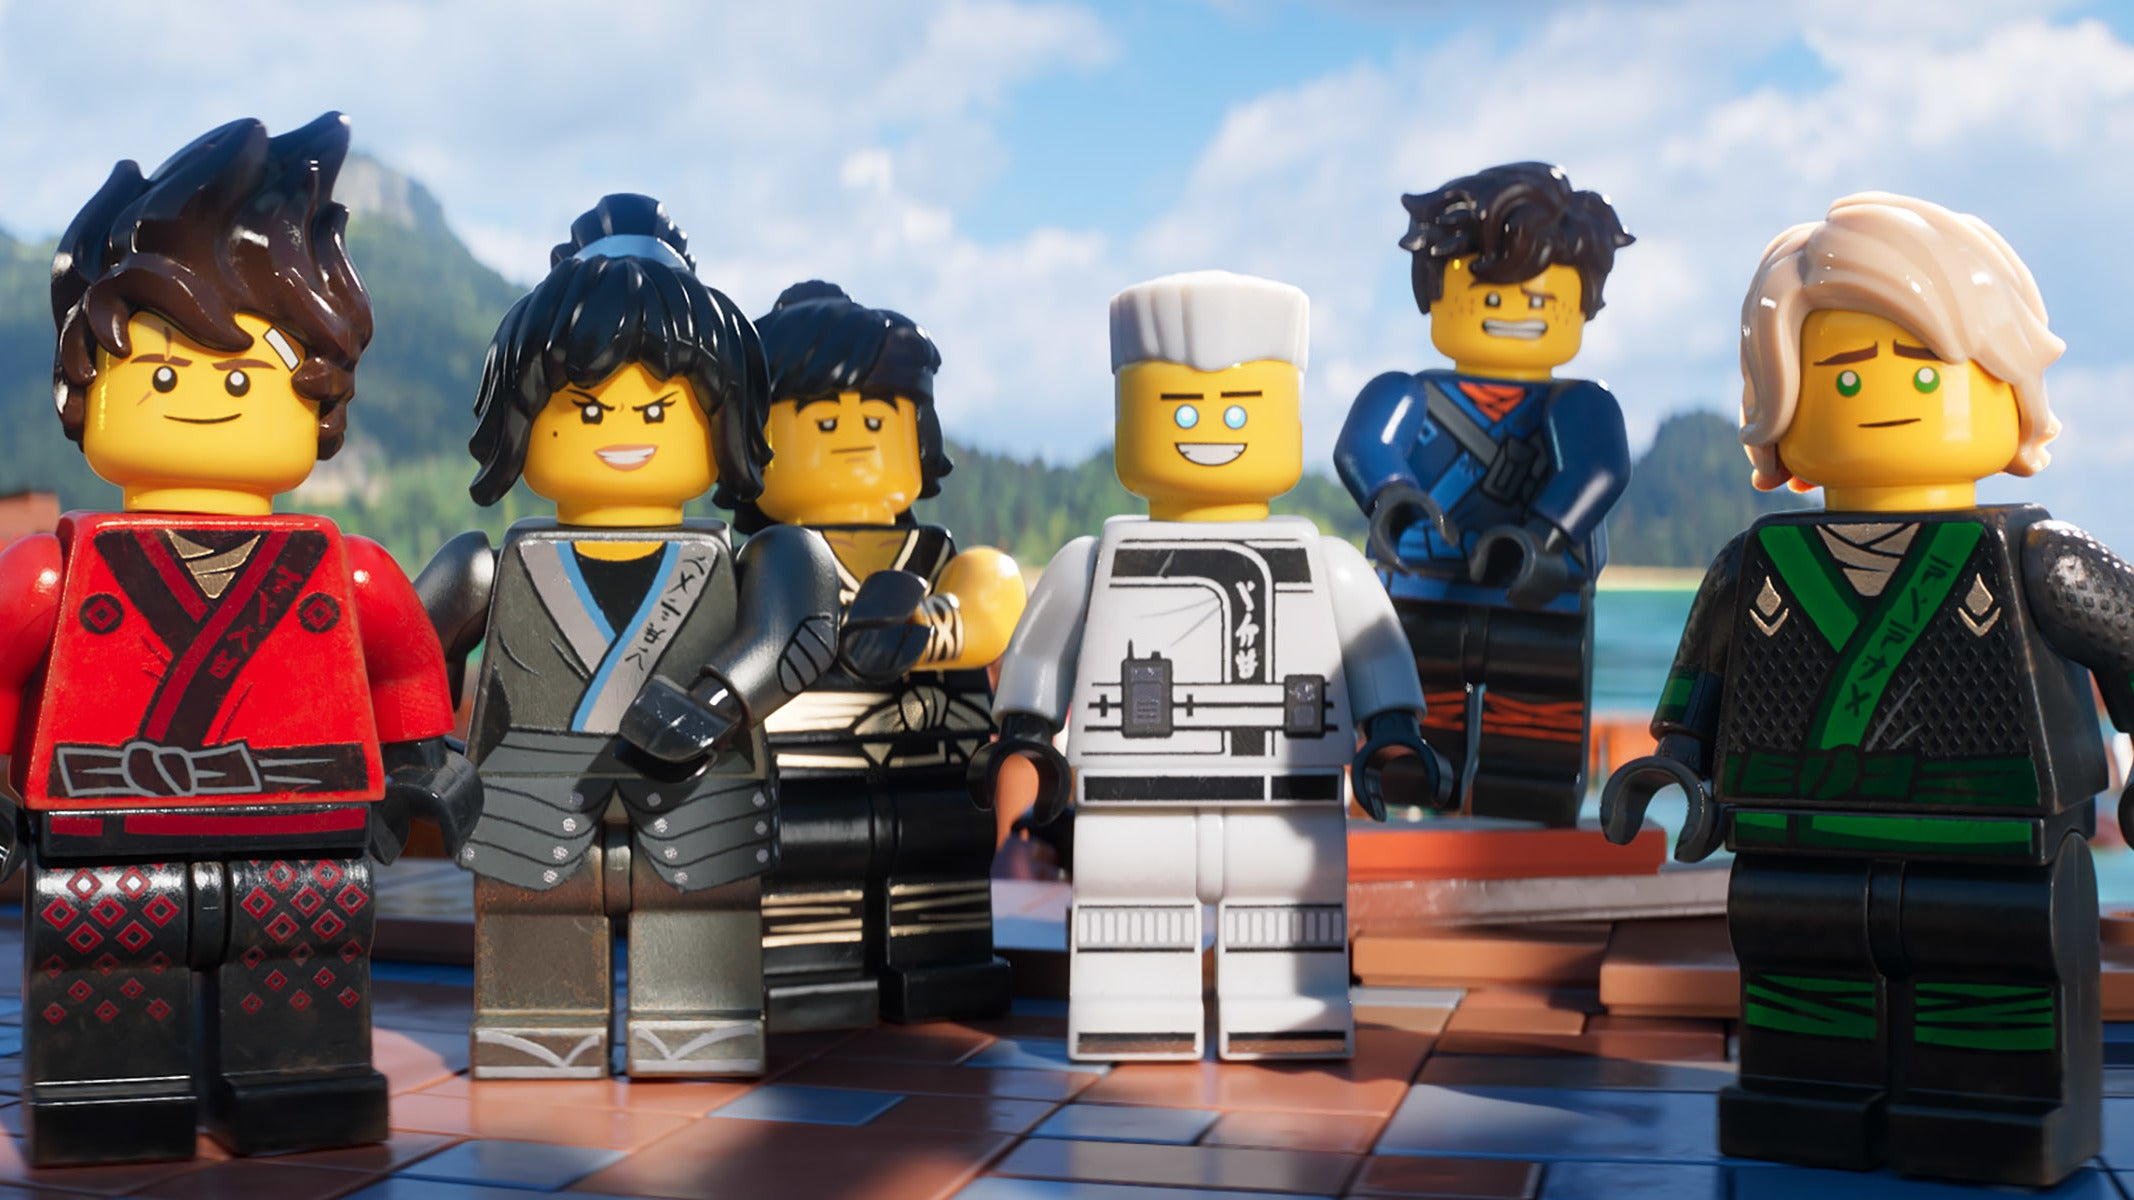 The Lego Ninjago Movie Feels Like It Was Put Together The Wrong Way